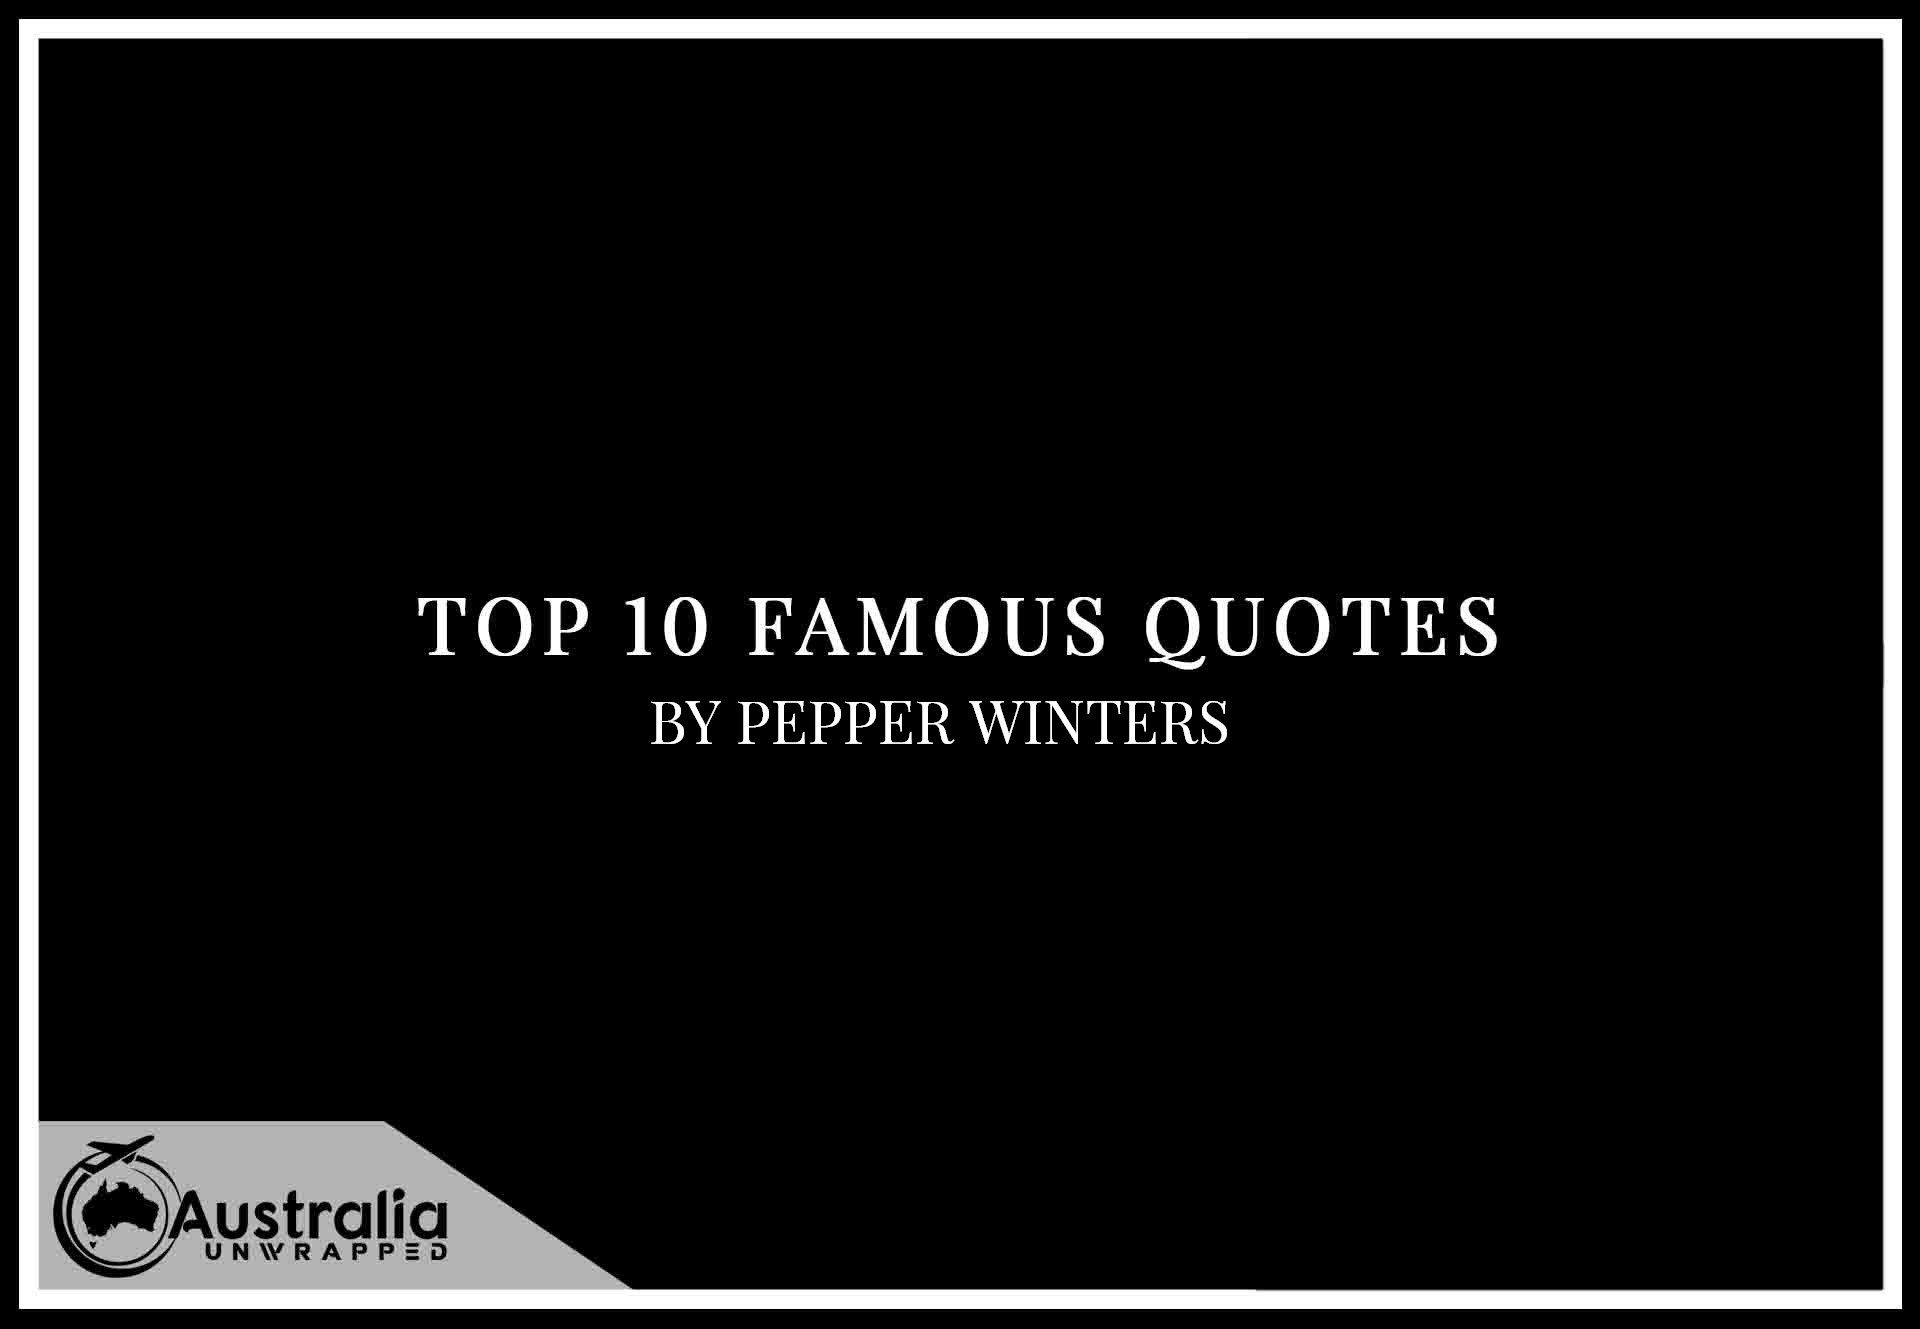 Top 10 Famous Quotes by Author Pepper Winters